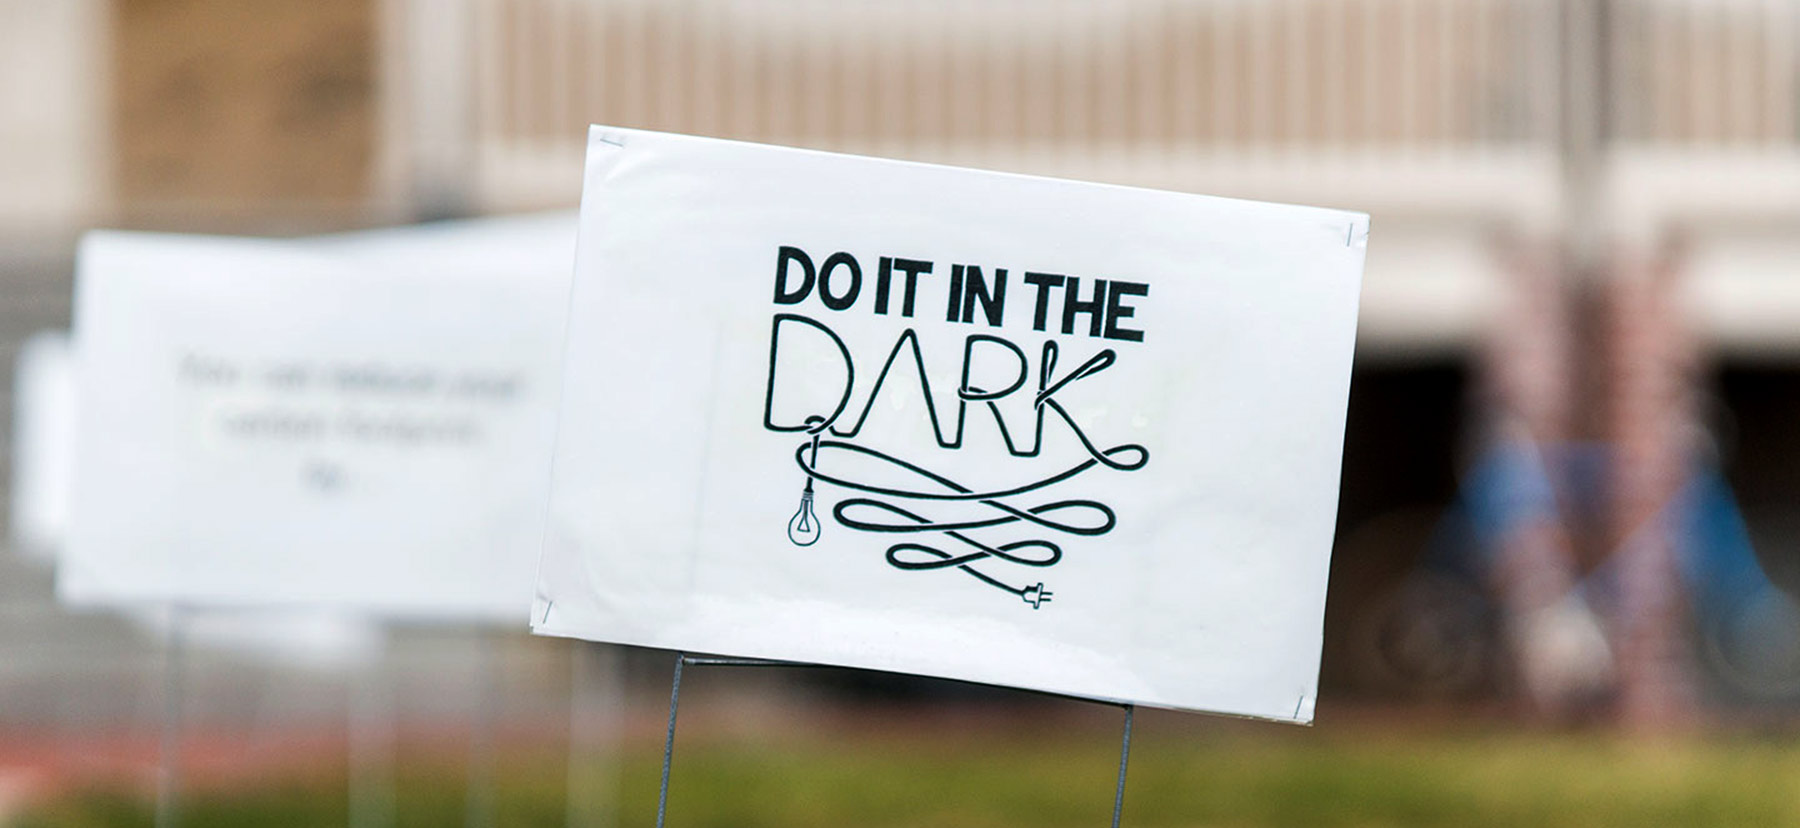 A Do it in the Dark sign